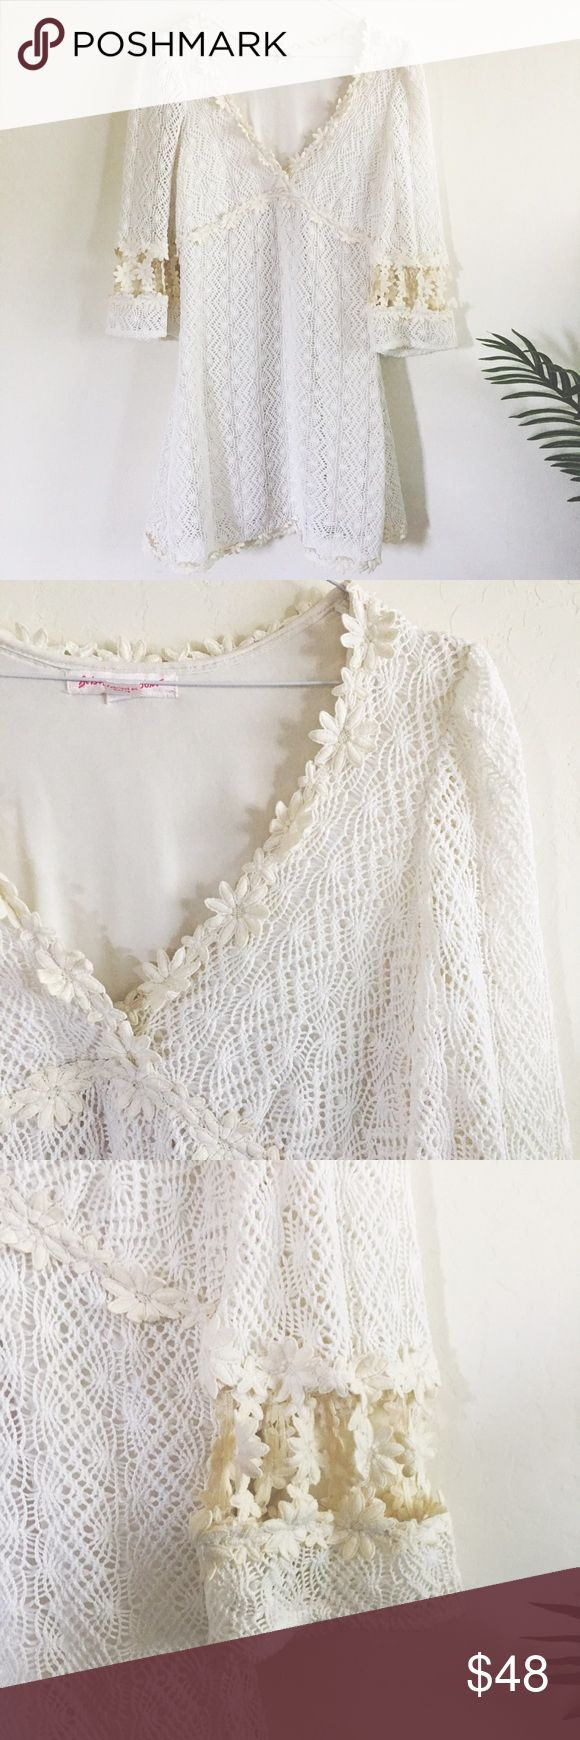 """Betsey Johnson Daisy Hippie Crochet Mini Dress Betsey Johnson daisy appliqué dress perfect for summer nights. Size 2 chest 34"""" length 31"""" cotton poly YES to: Bundle Discounts NO to: Trades / Modeling / Holds Thanks For Shopping My Closet 🌿 Betsey Johnson Dresses Mini"""